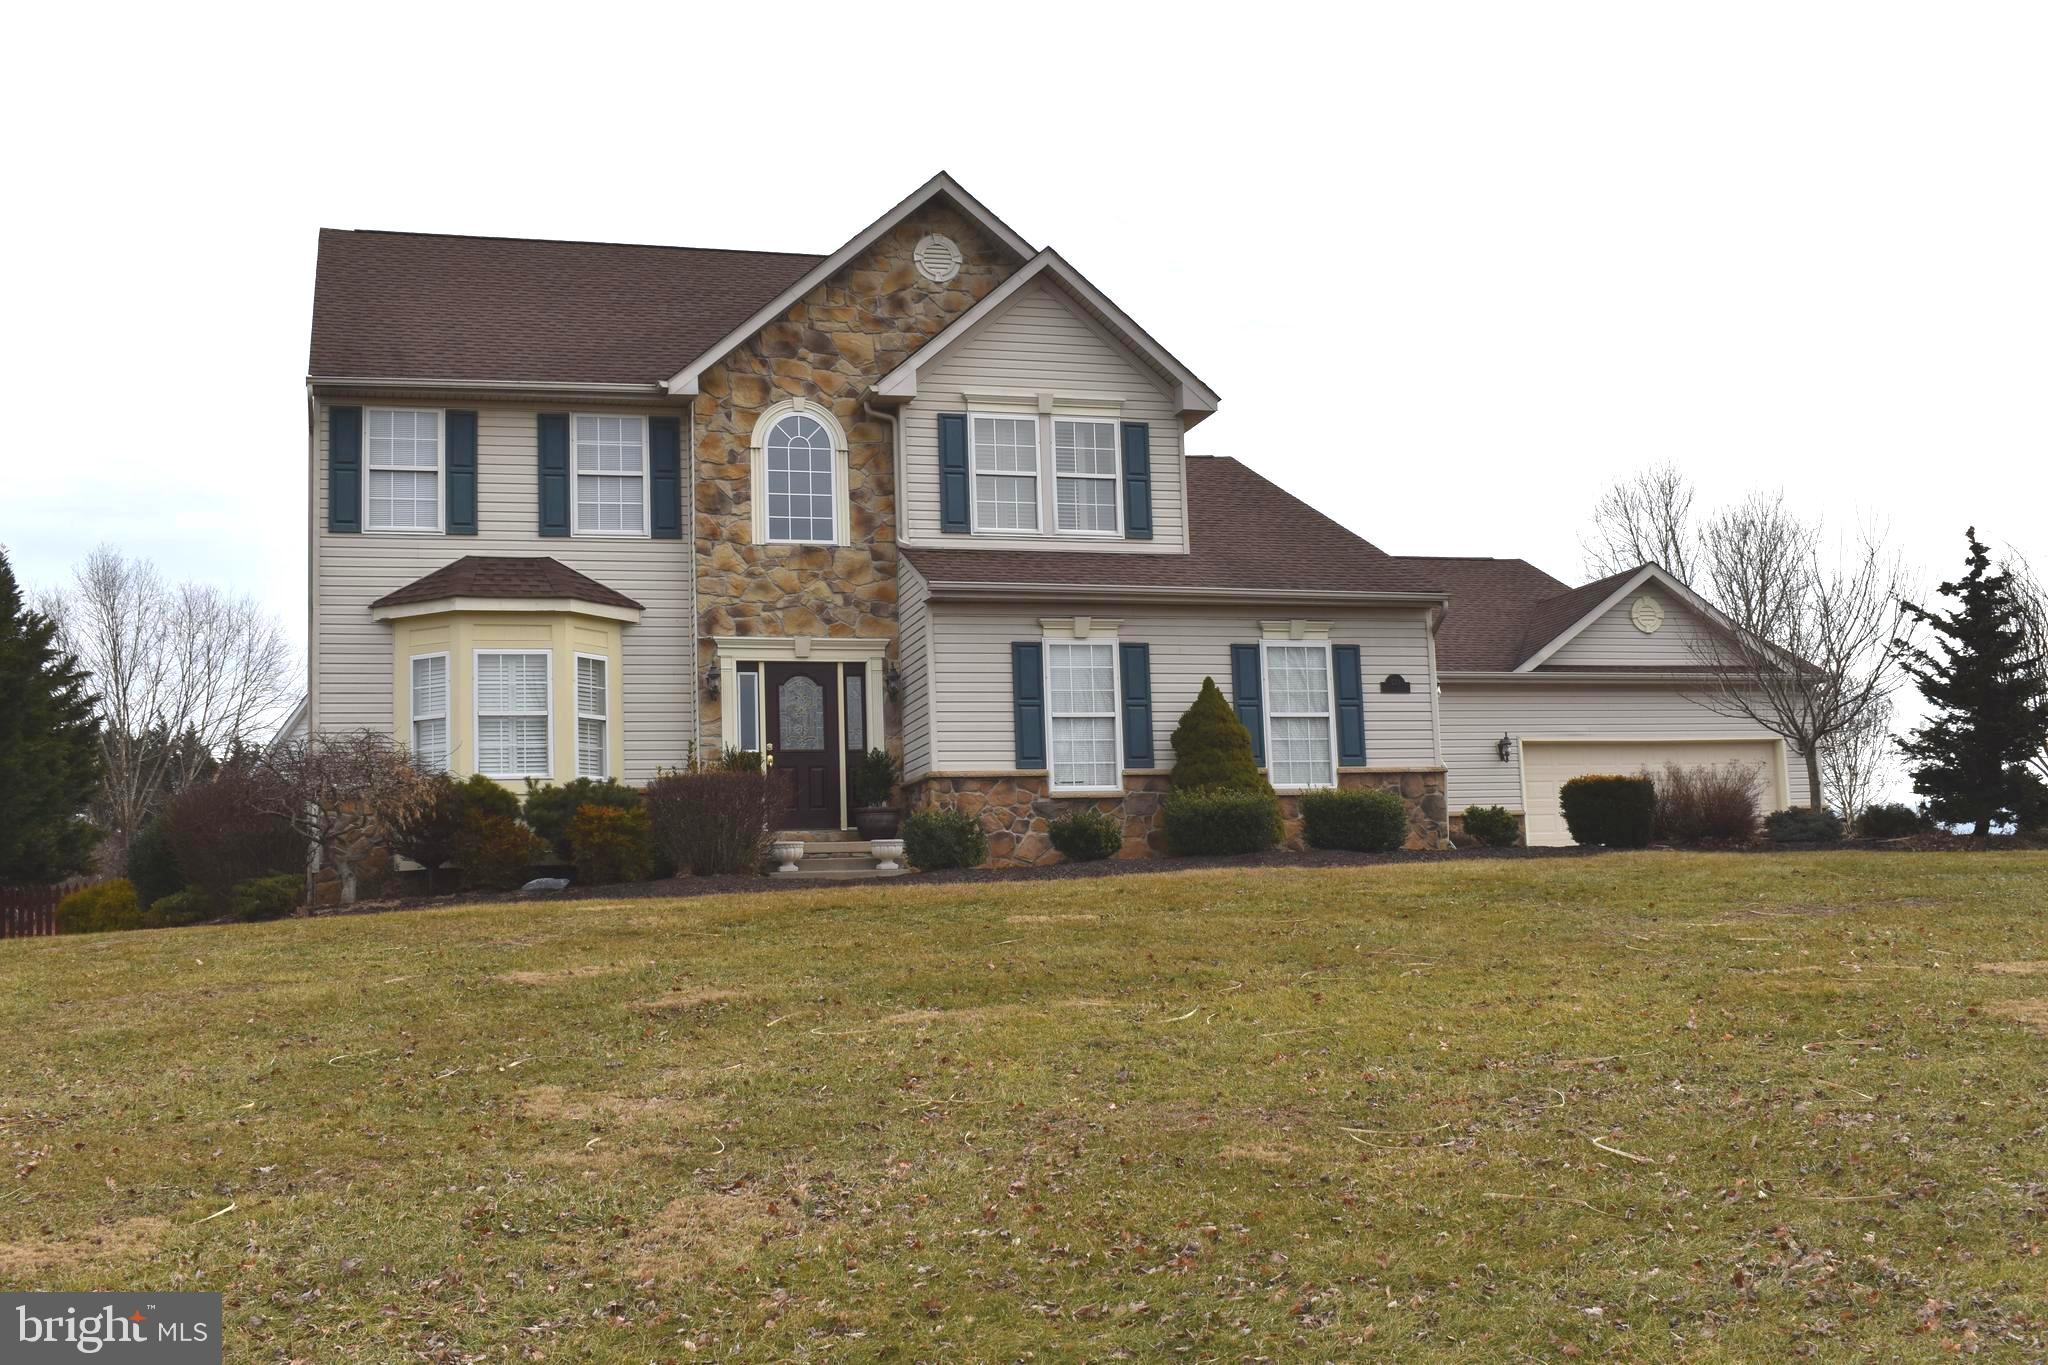 223 PINTAIL COURT, HARPERS FERRY, WV 25425